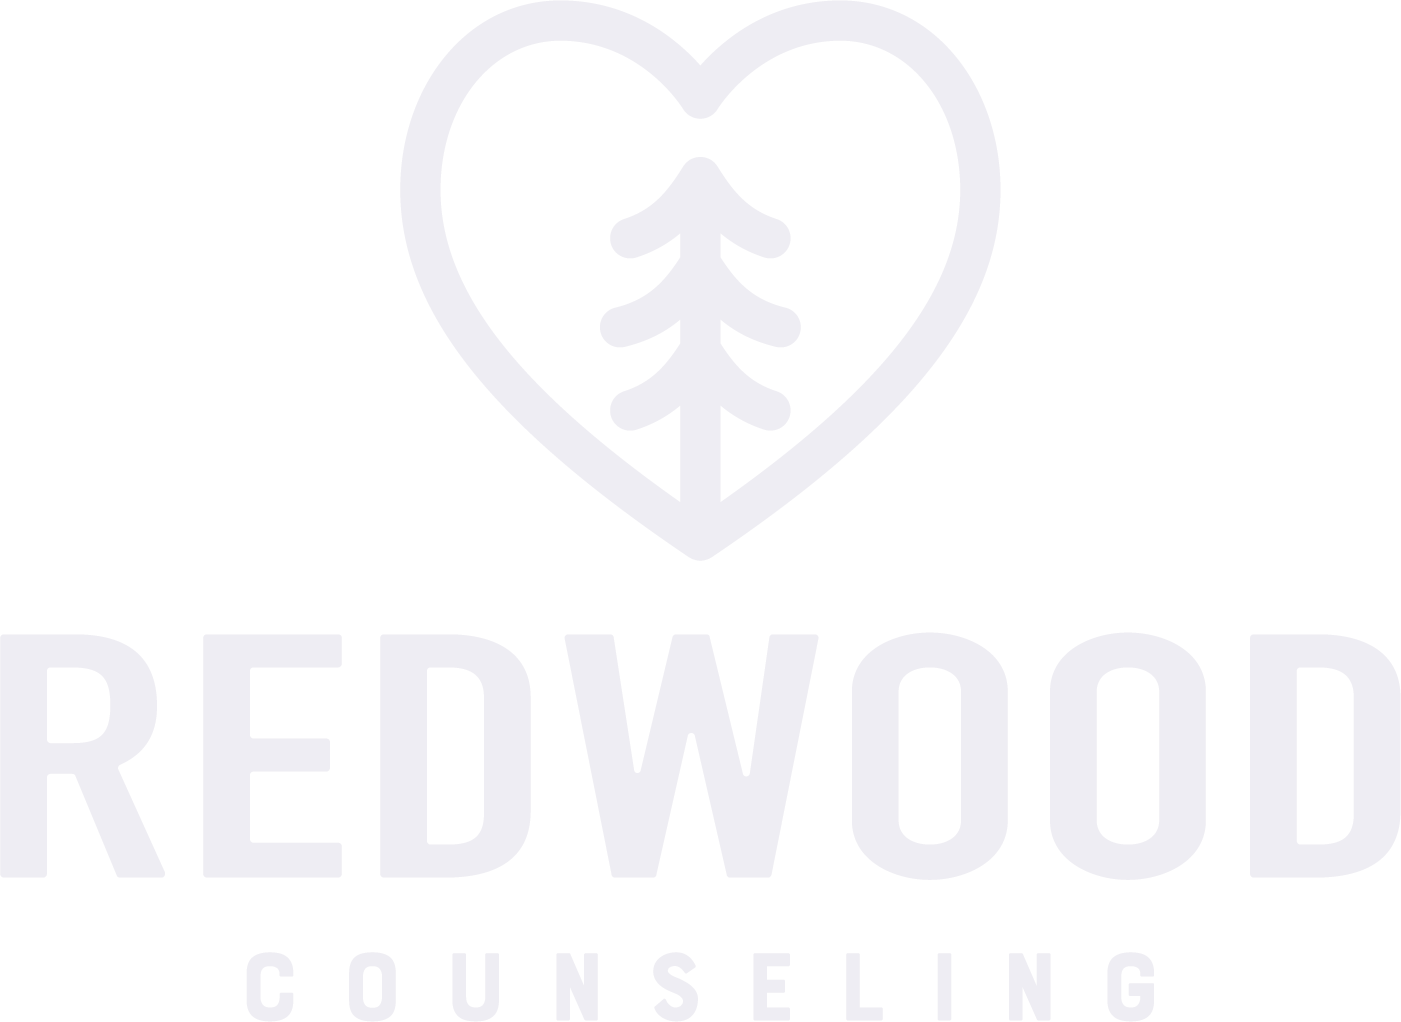 Redwood Counseling